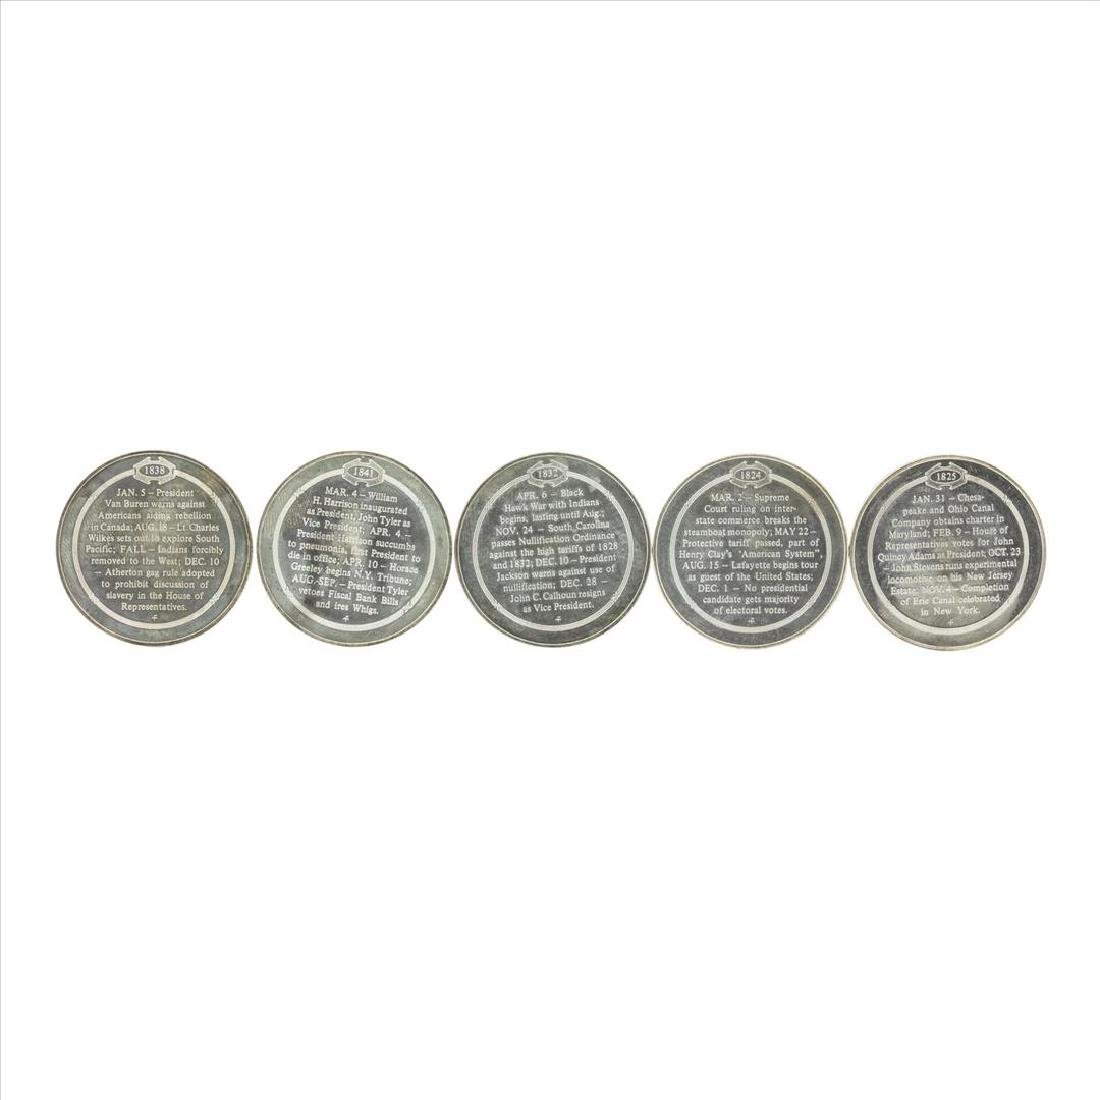 Lot of (5) Commemorative Silver Coins - 2